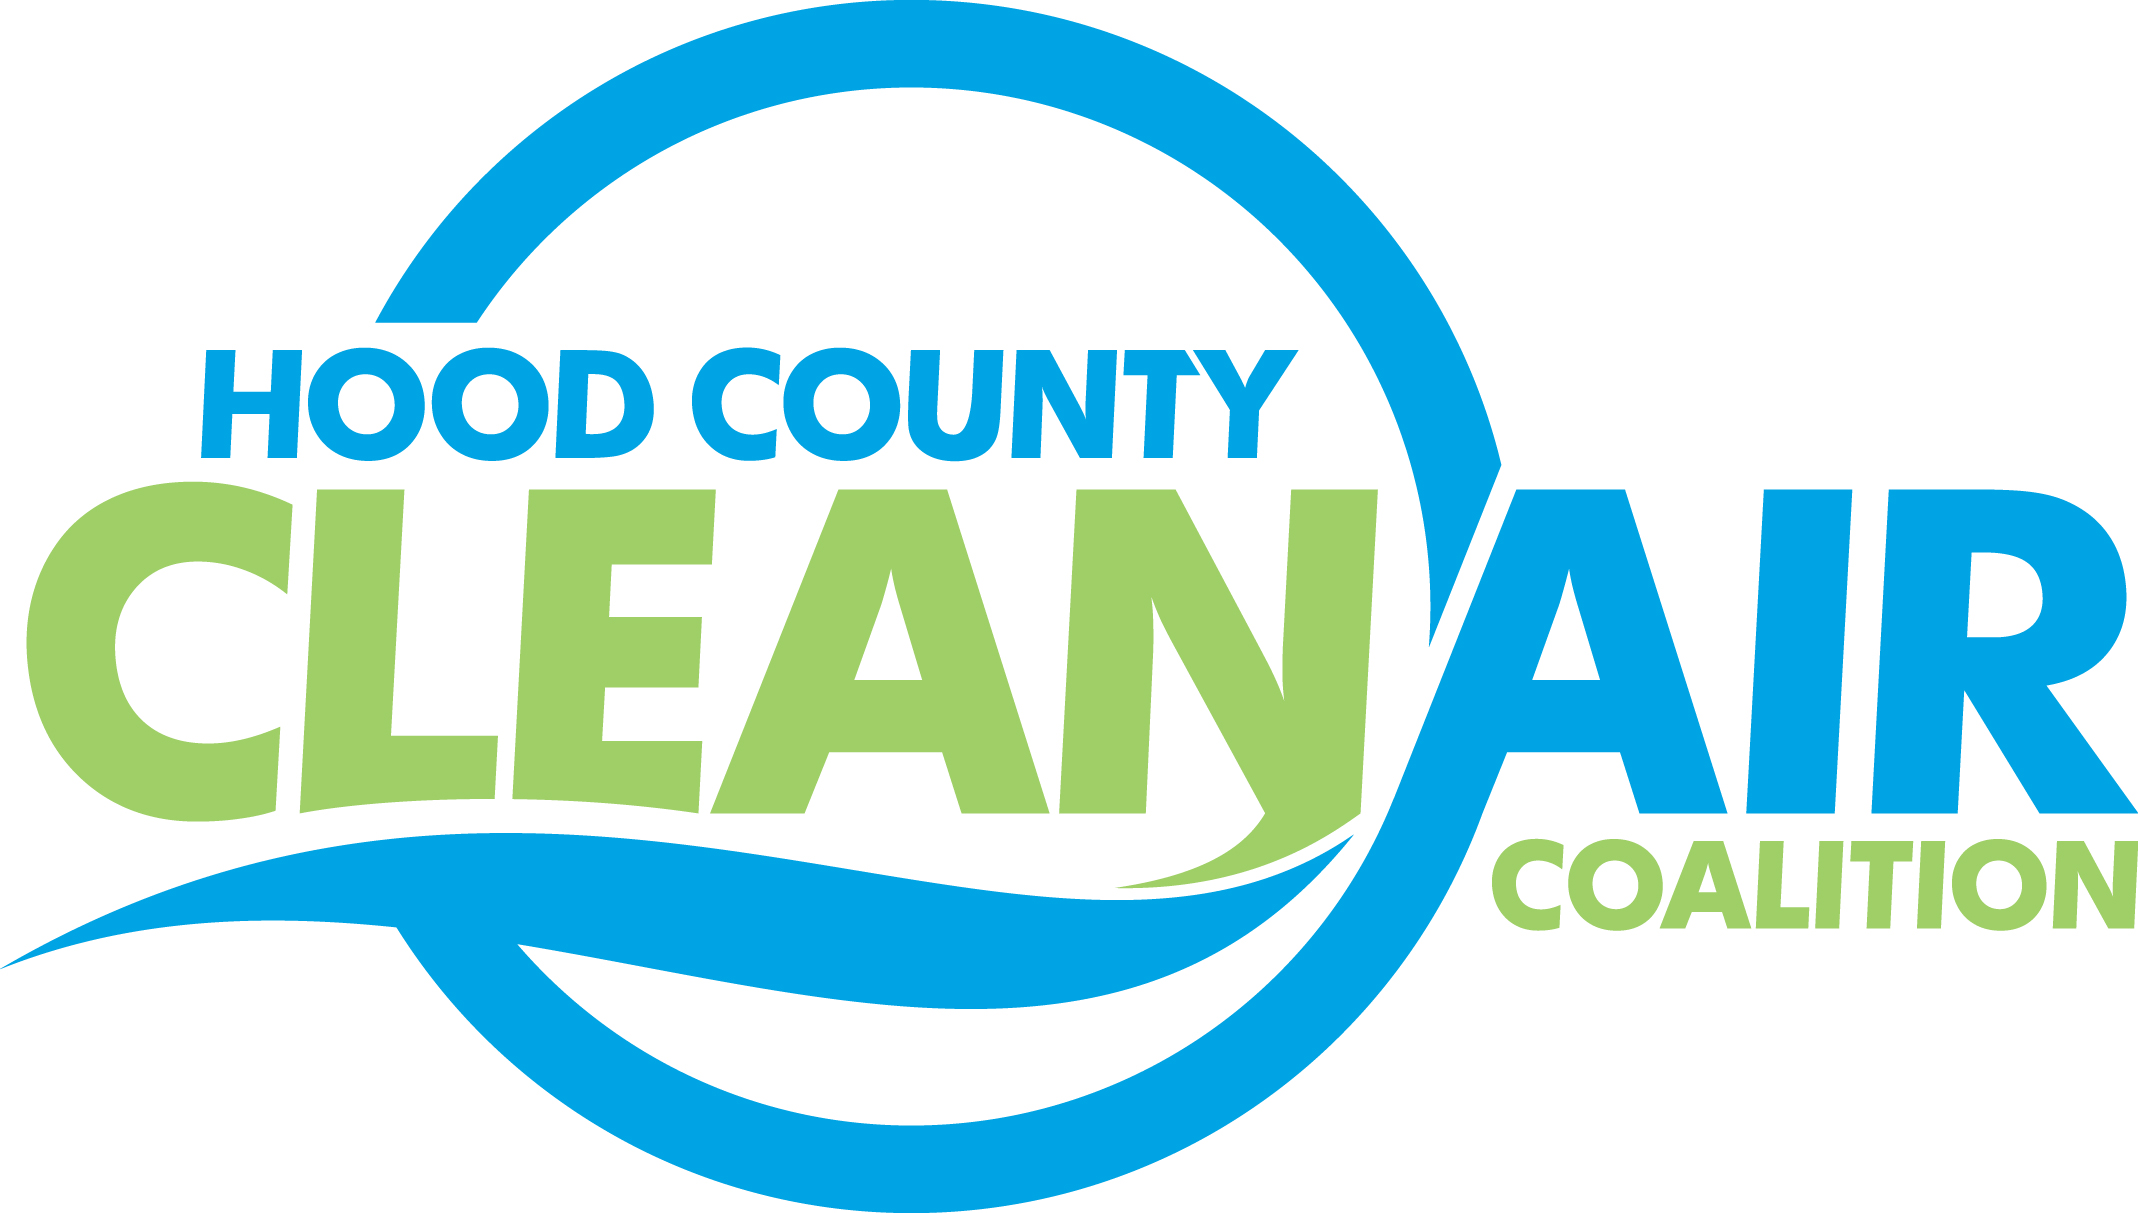 Hood County Clean Air Coalition